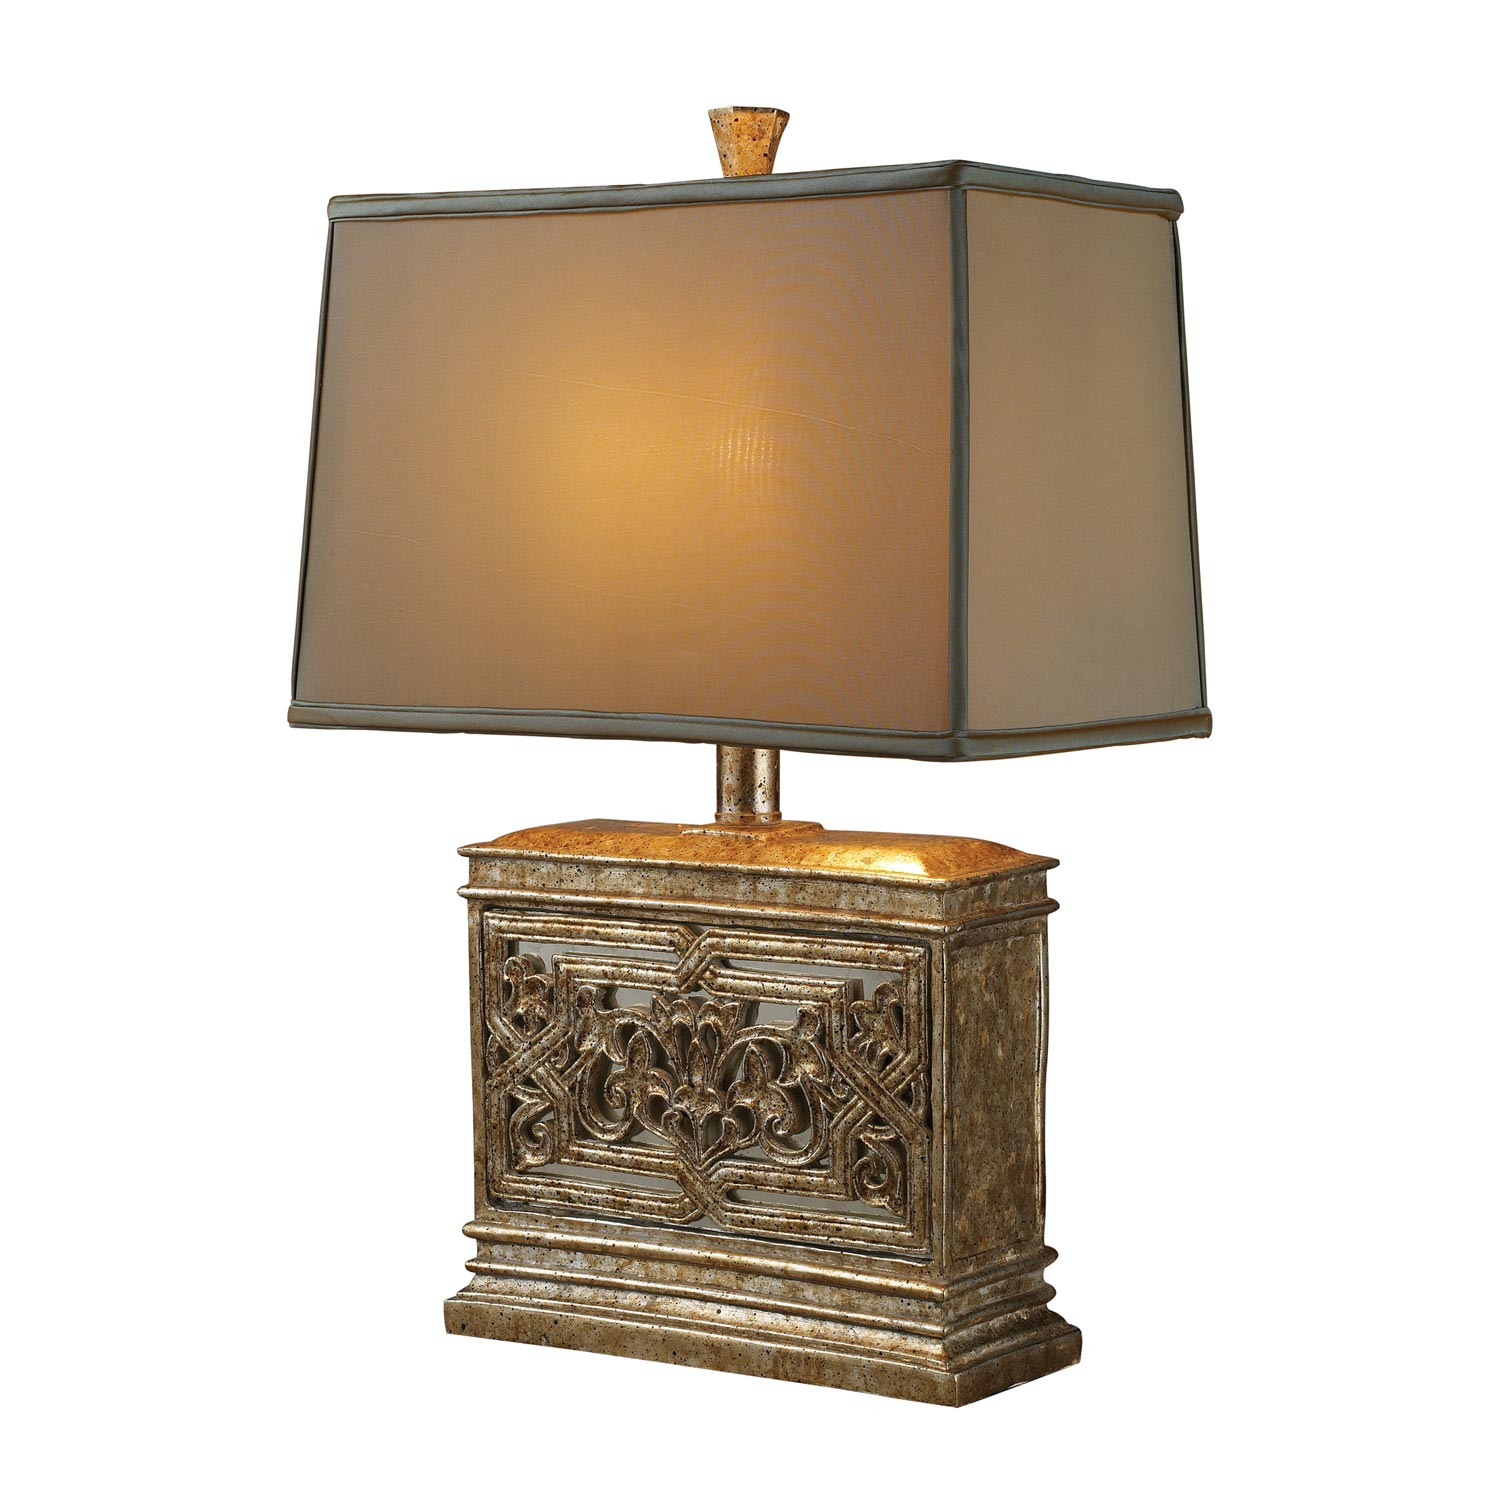 Elk Lighting D1443 Laurel Run Table Lamp - Courtney Gold